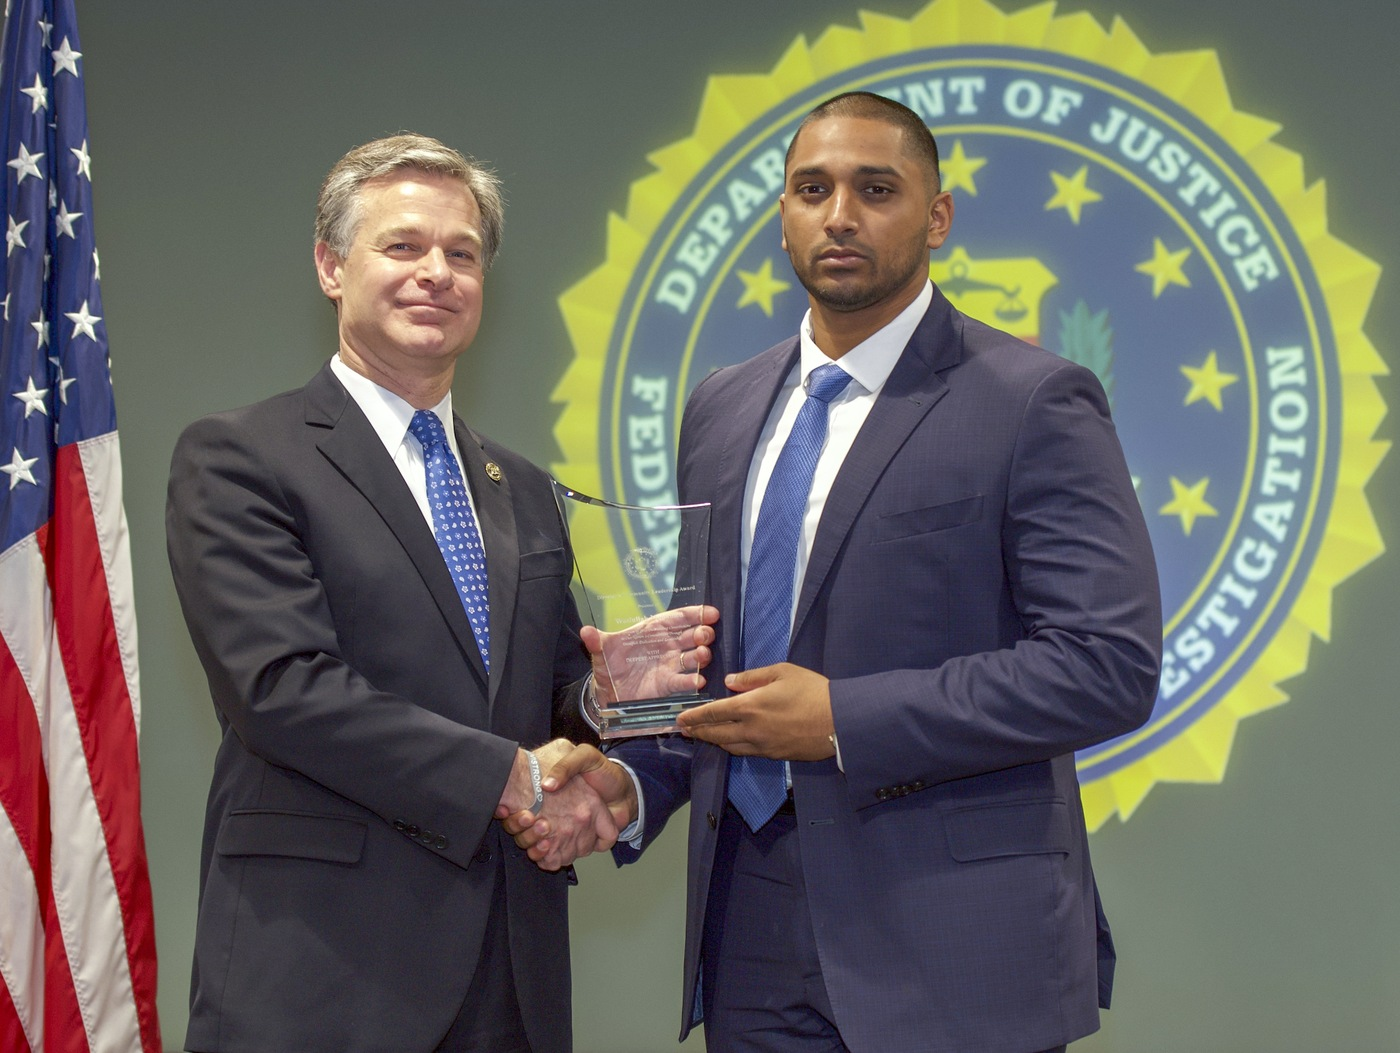 FBI Director Christopher Wray presents Pittsburgh Division recipient Wasiullah Mohamed with the Director's Community Leadership Award (DCLA) at a ceremony at FBI Headquarters on May 3, 2019.